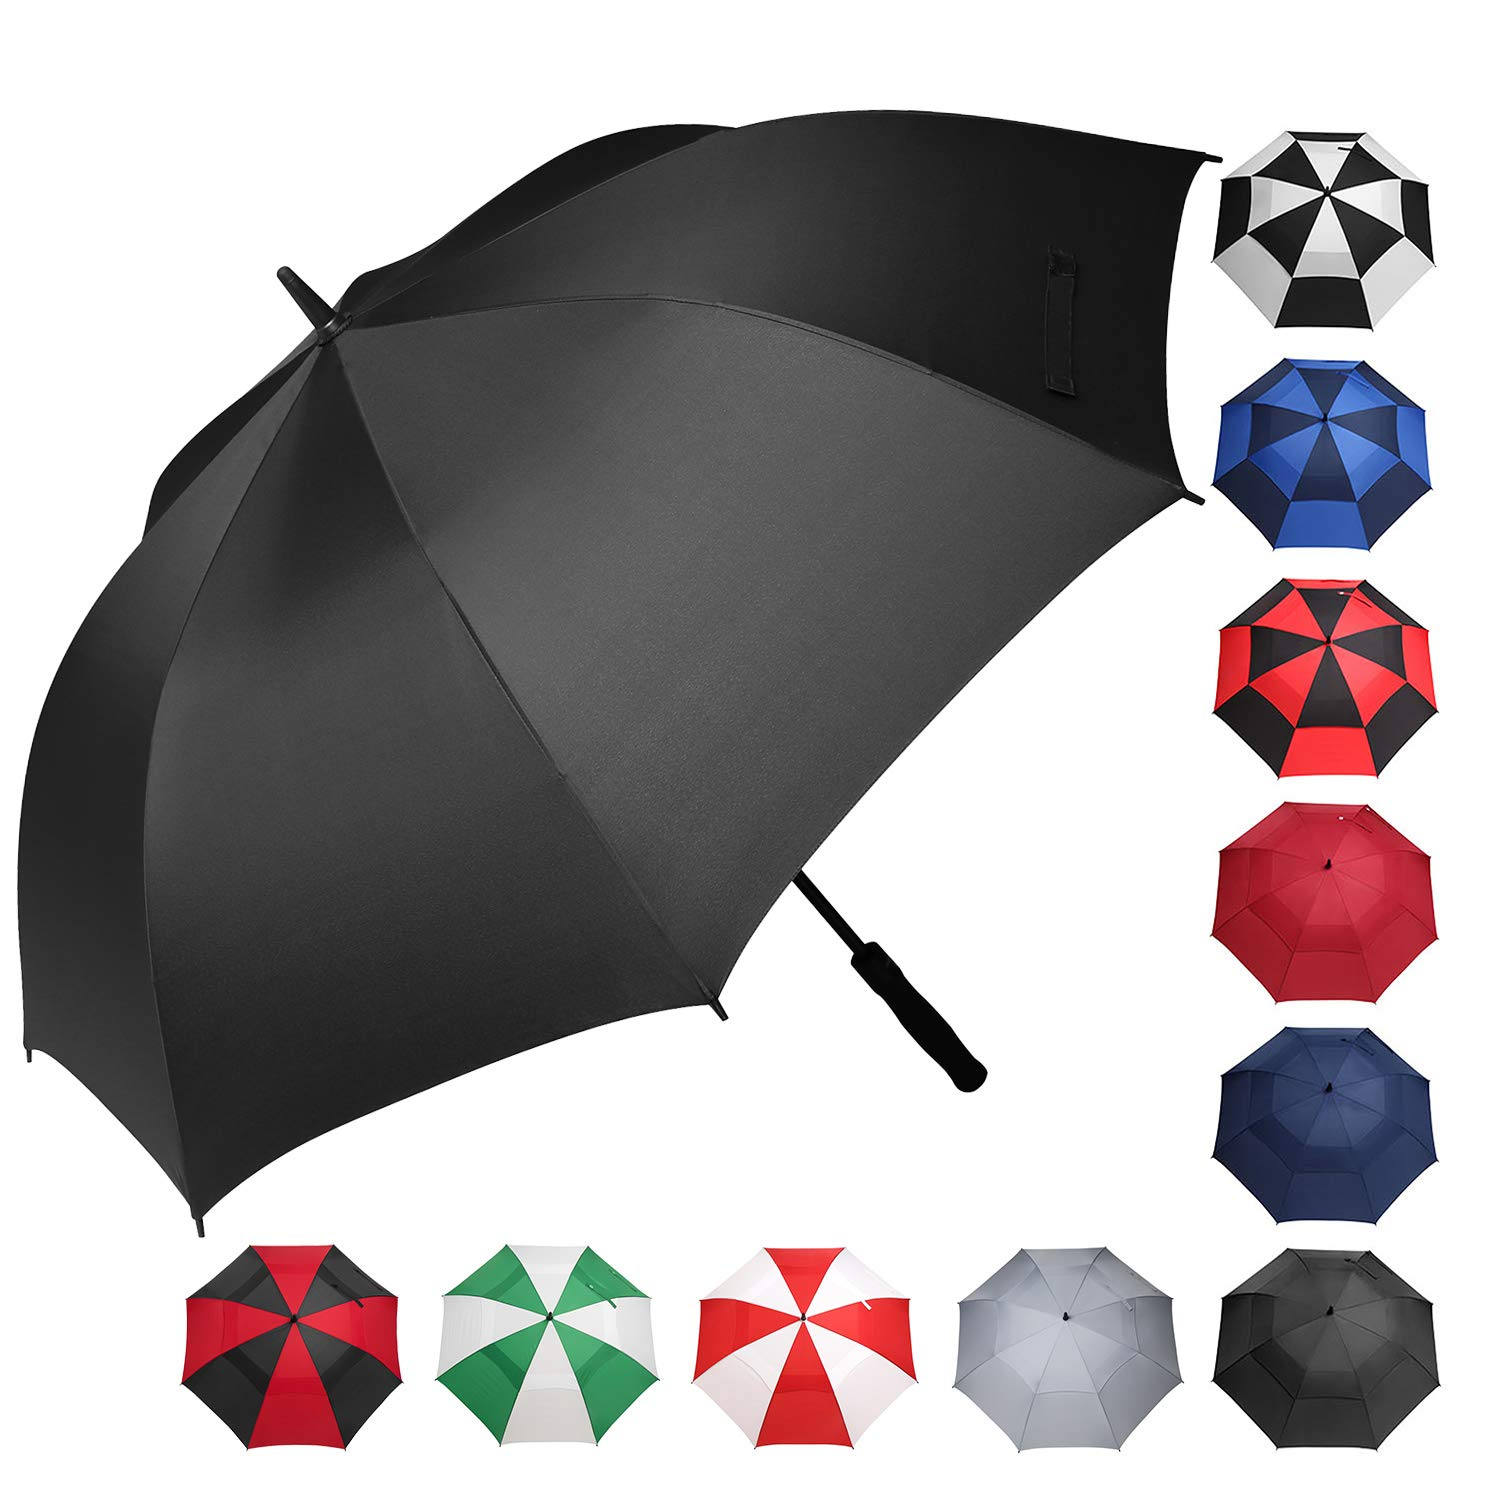 BAGAIL Golf Umbrella 68/62/58 Inch Large Oversize Windproof Waterproof Automatic Open Stick Umbrellas for Men and Women(Black,58 inch)